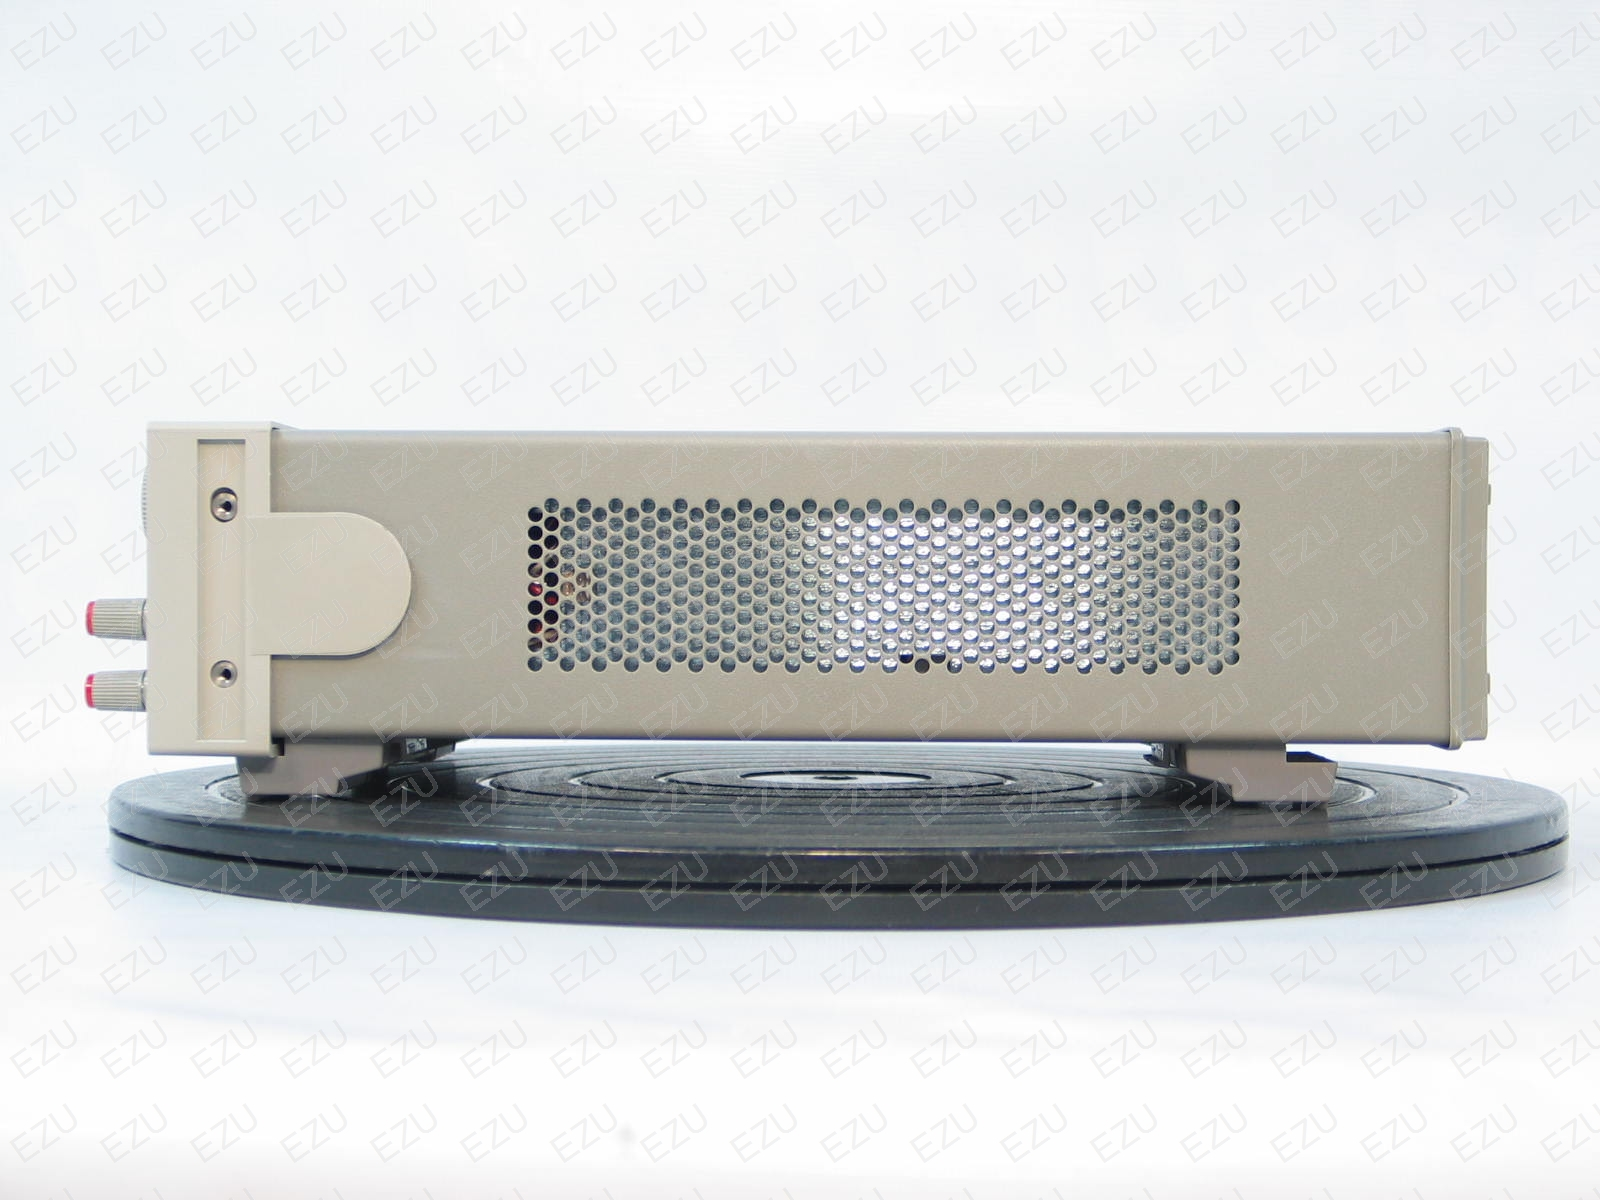 Agilent 6612C Left Photo